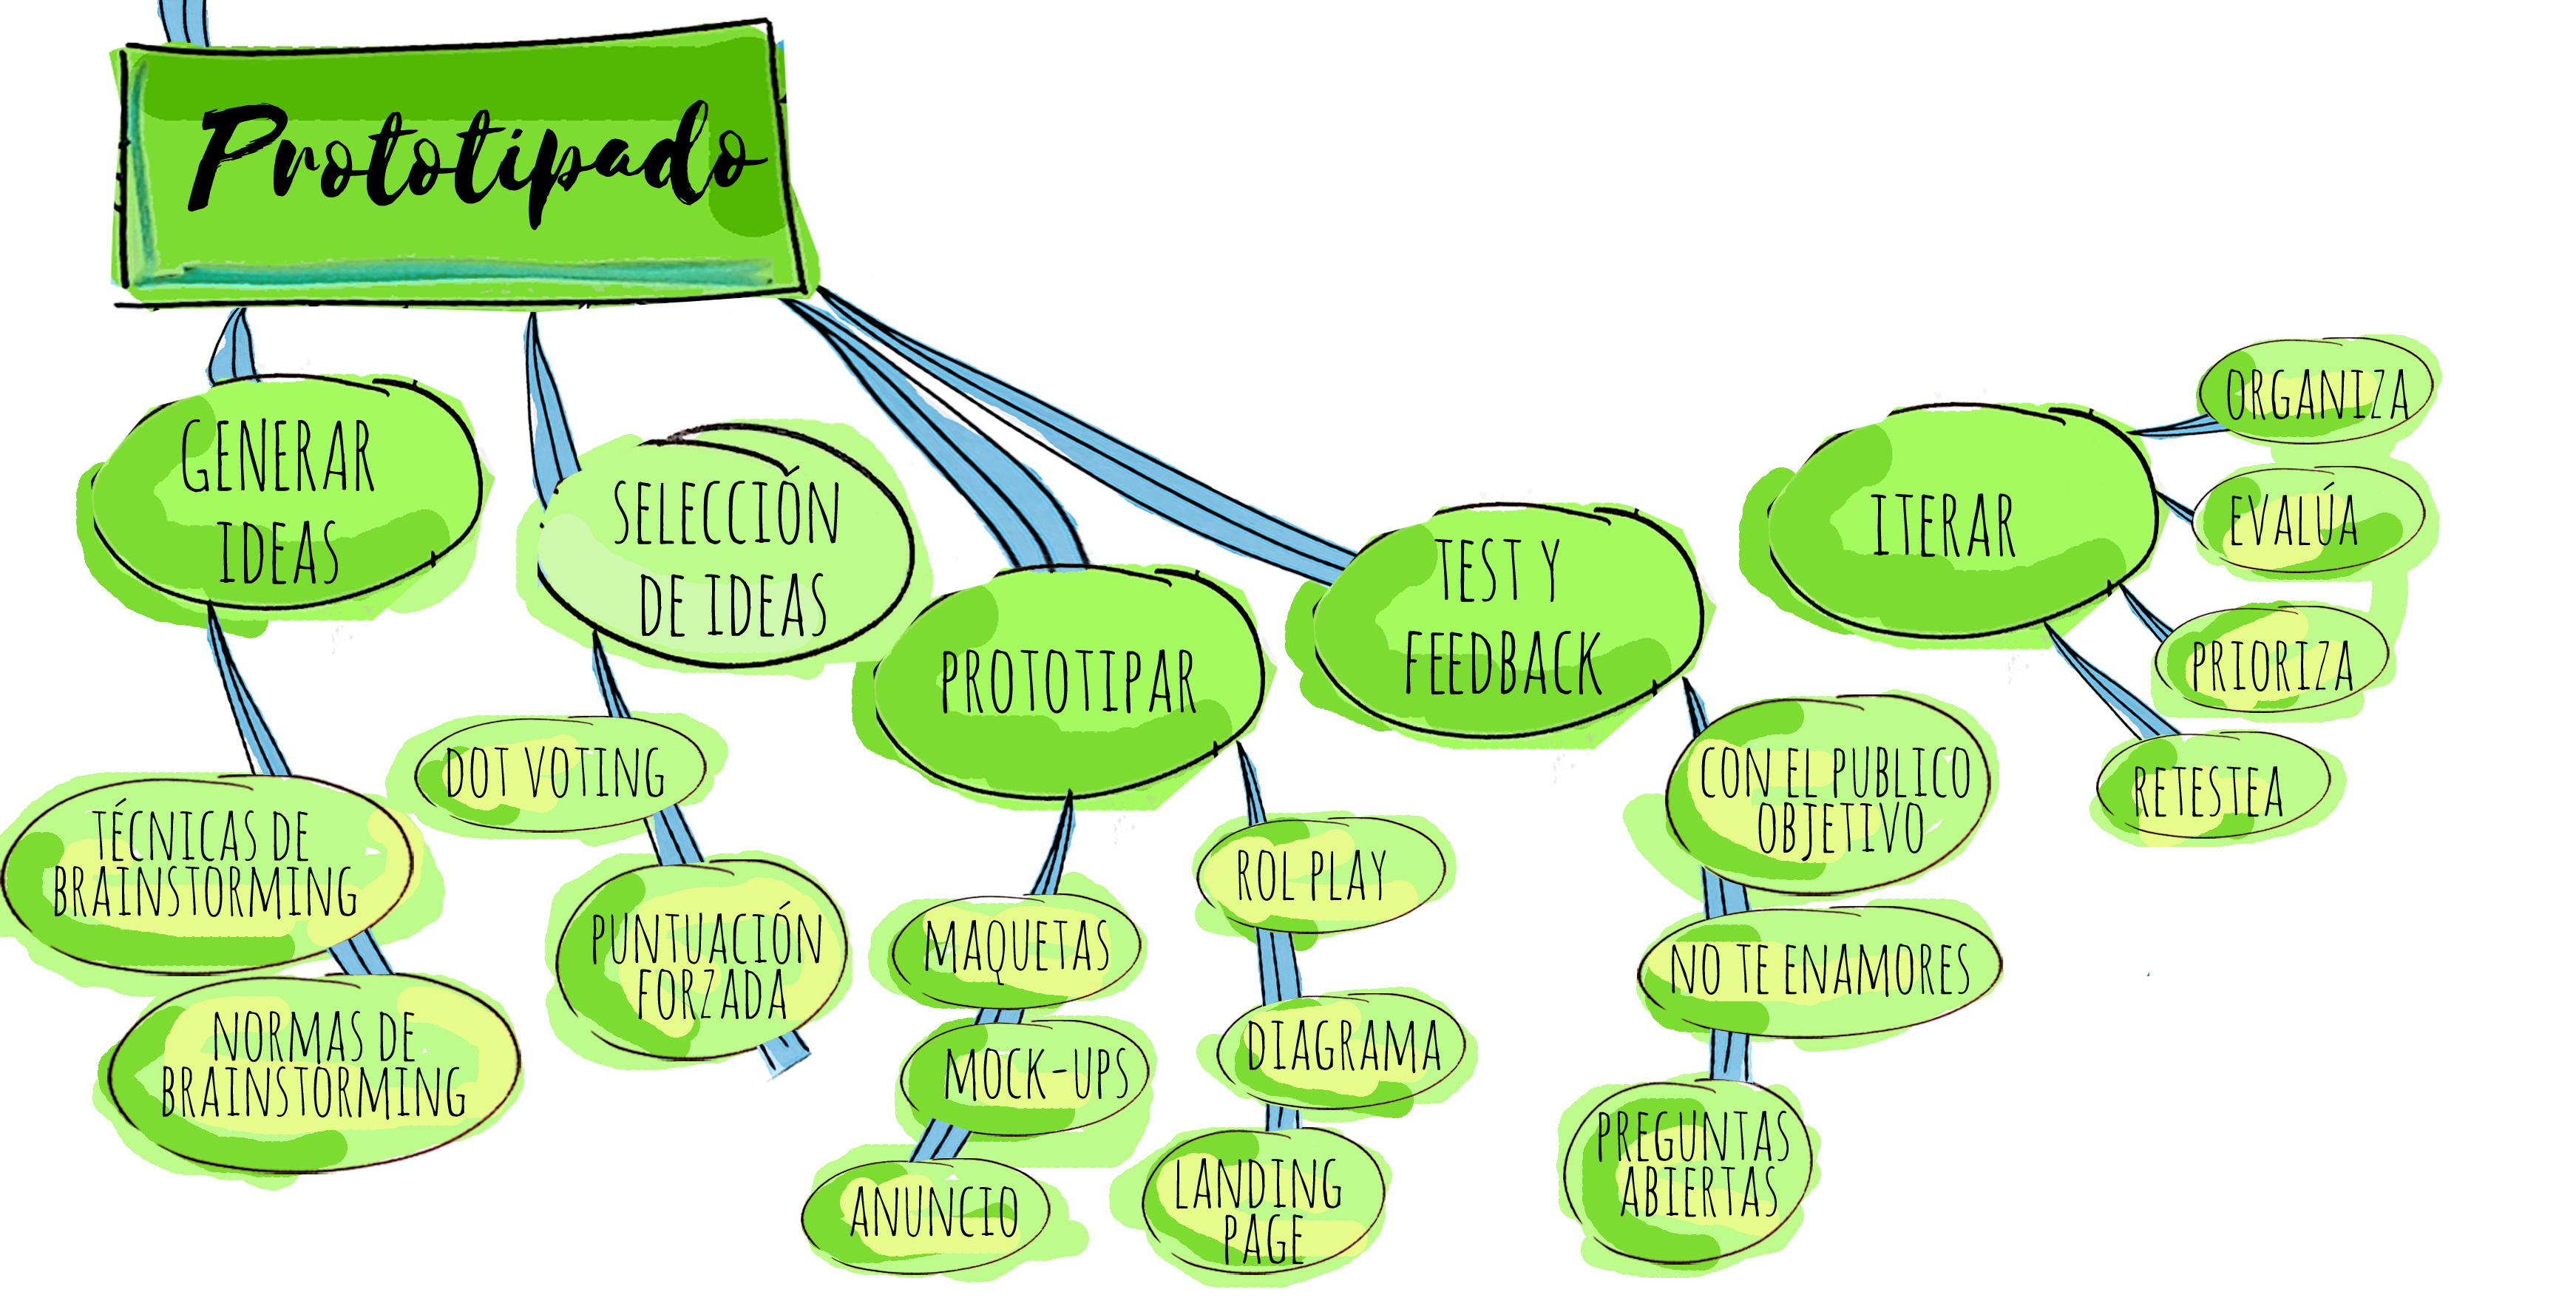 fase prototipado design thinking